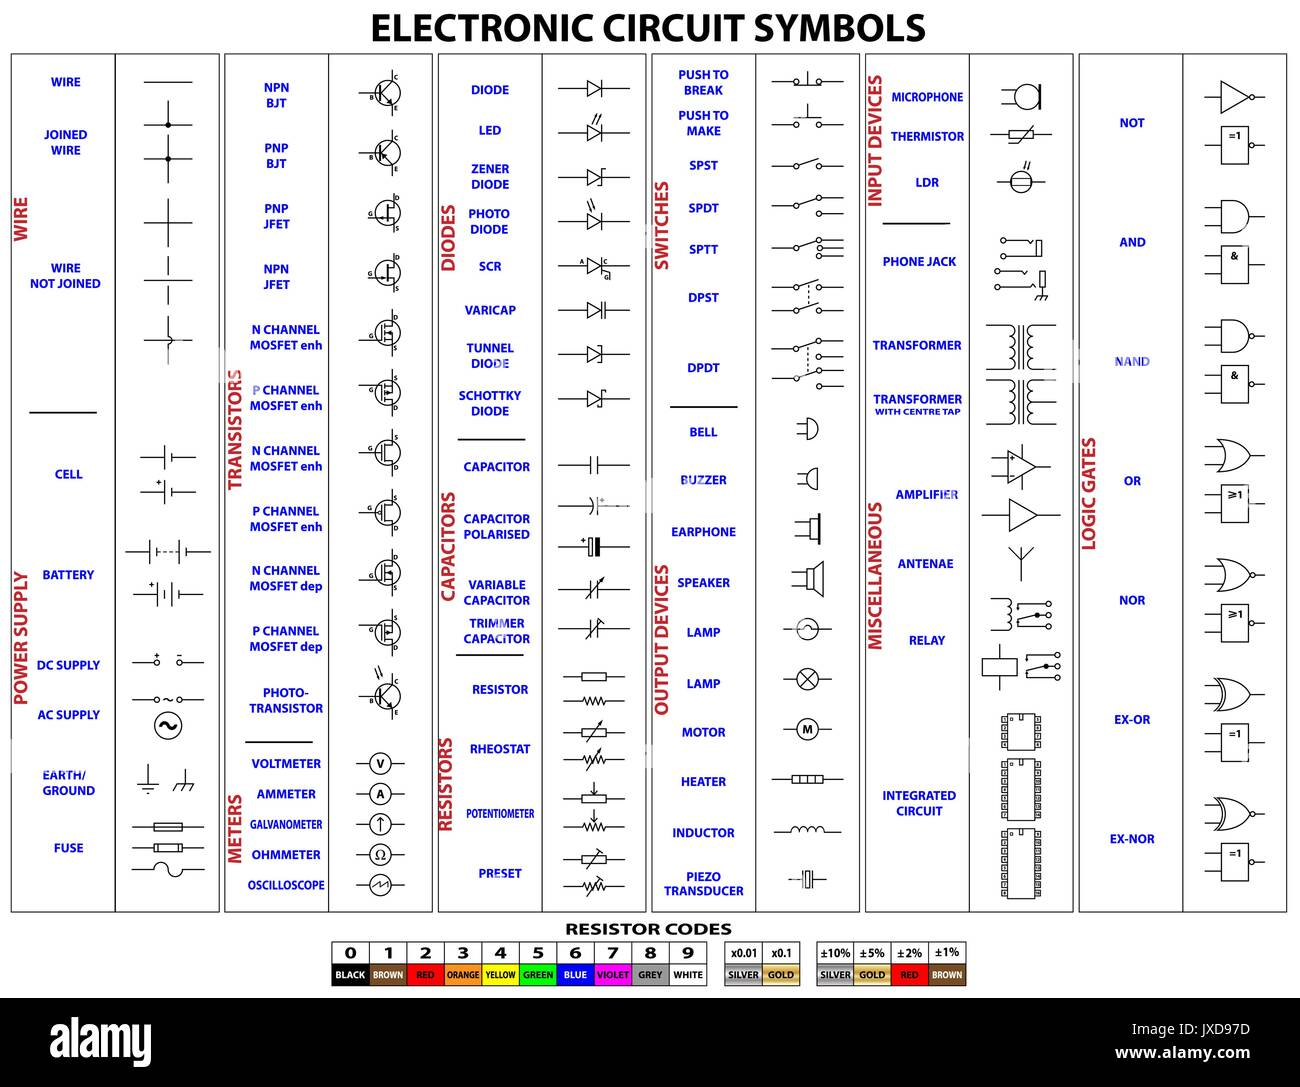 Ac Wiring Symbols Complete Set Of Electronic Circuit And Resistor Codes Stock